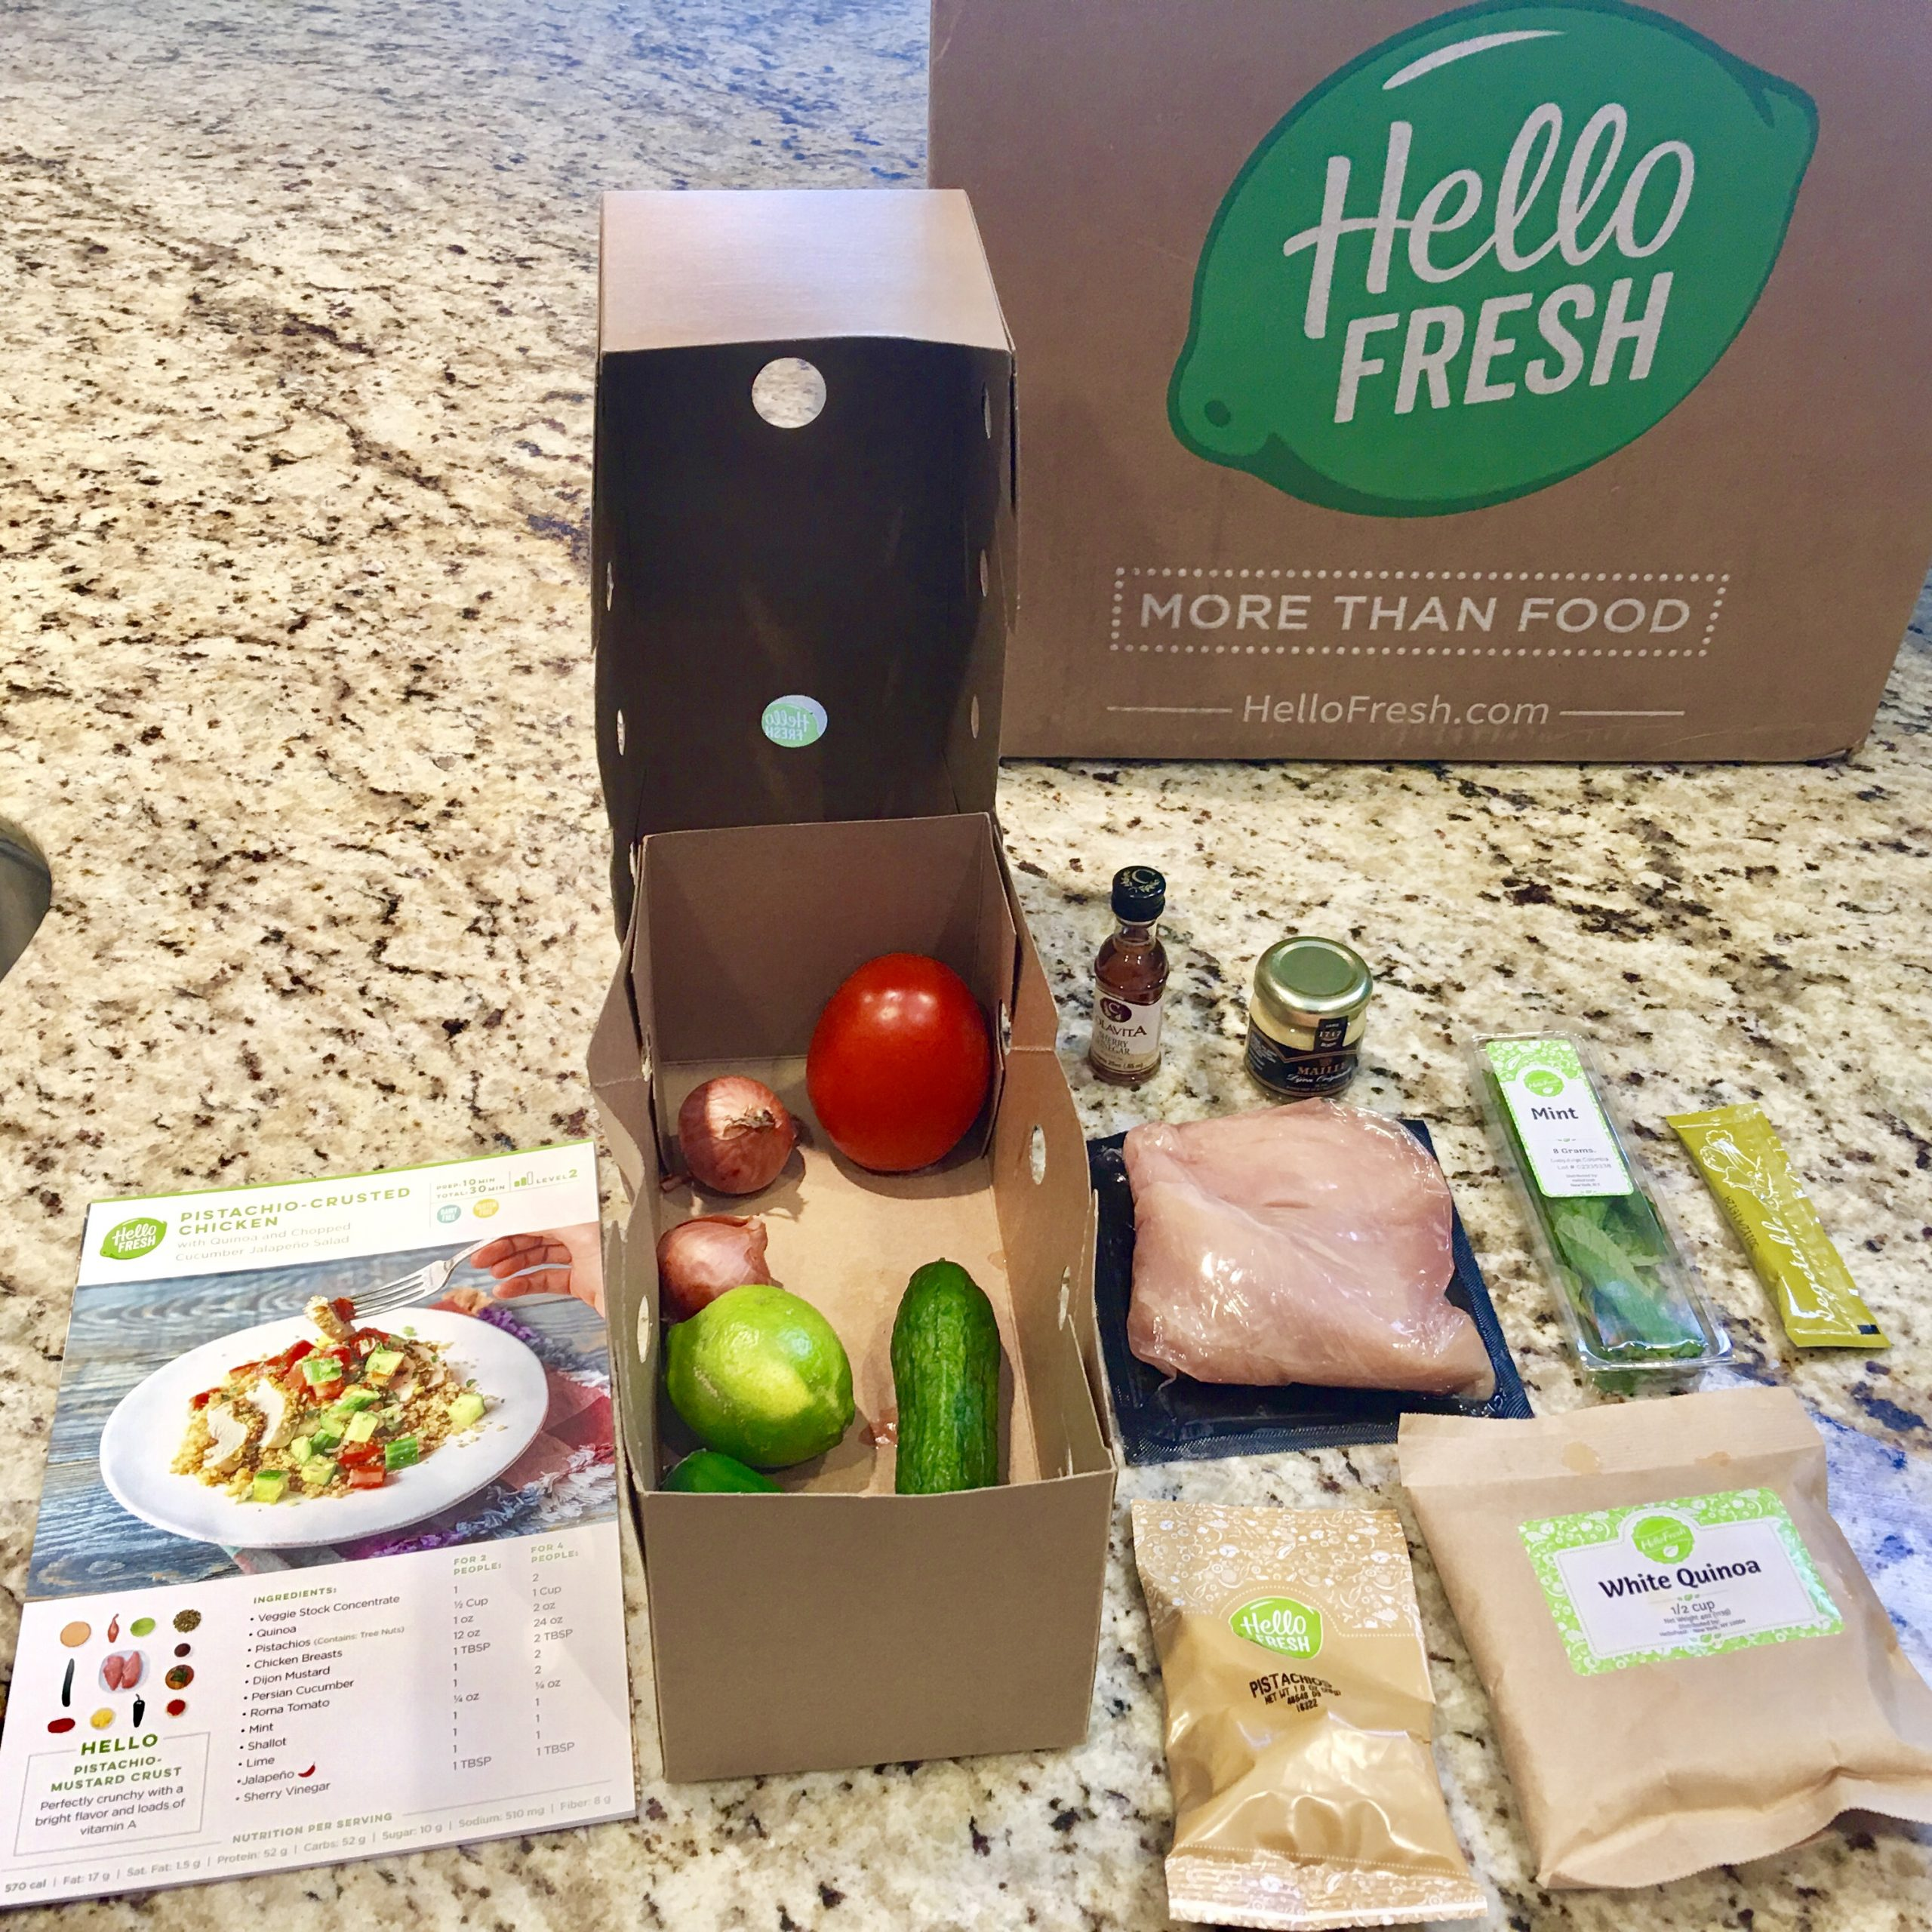 Hellofresh Customer Service Email